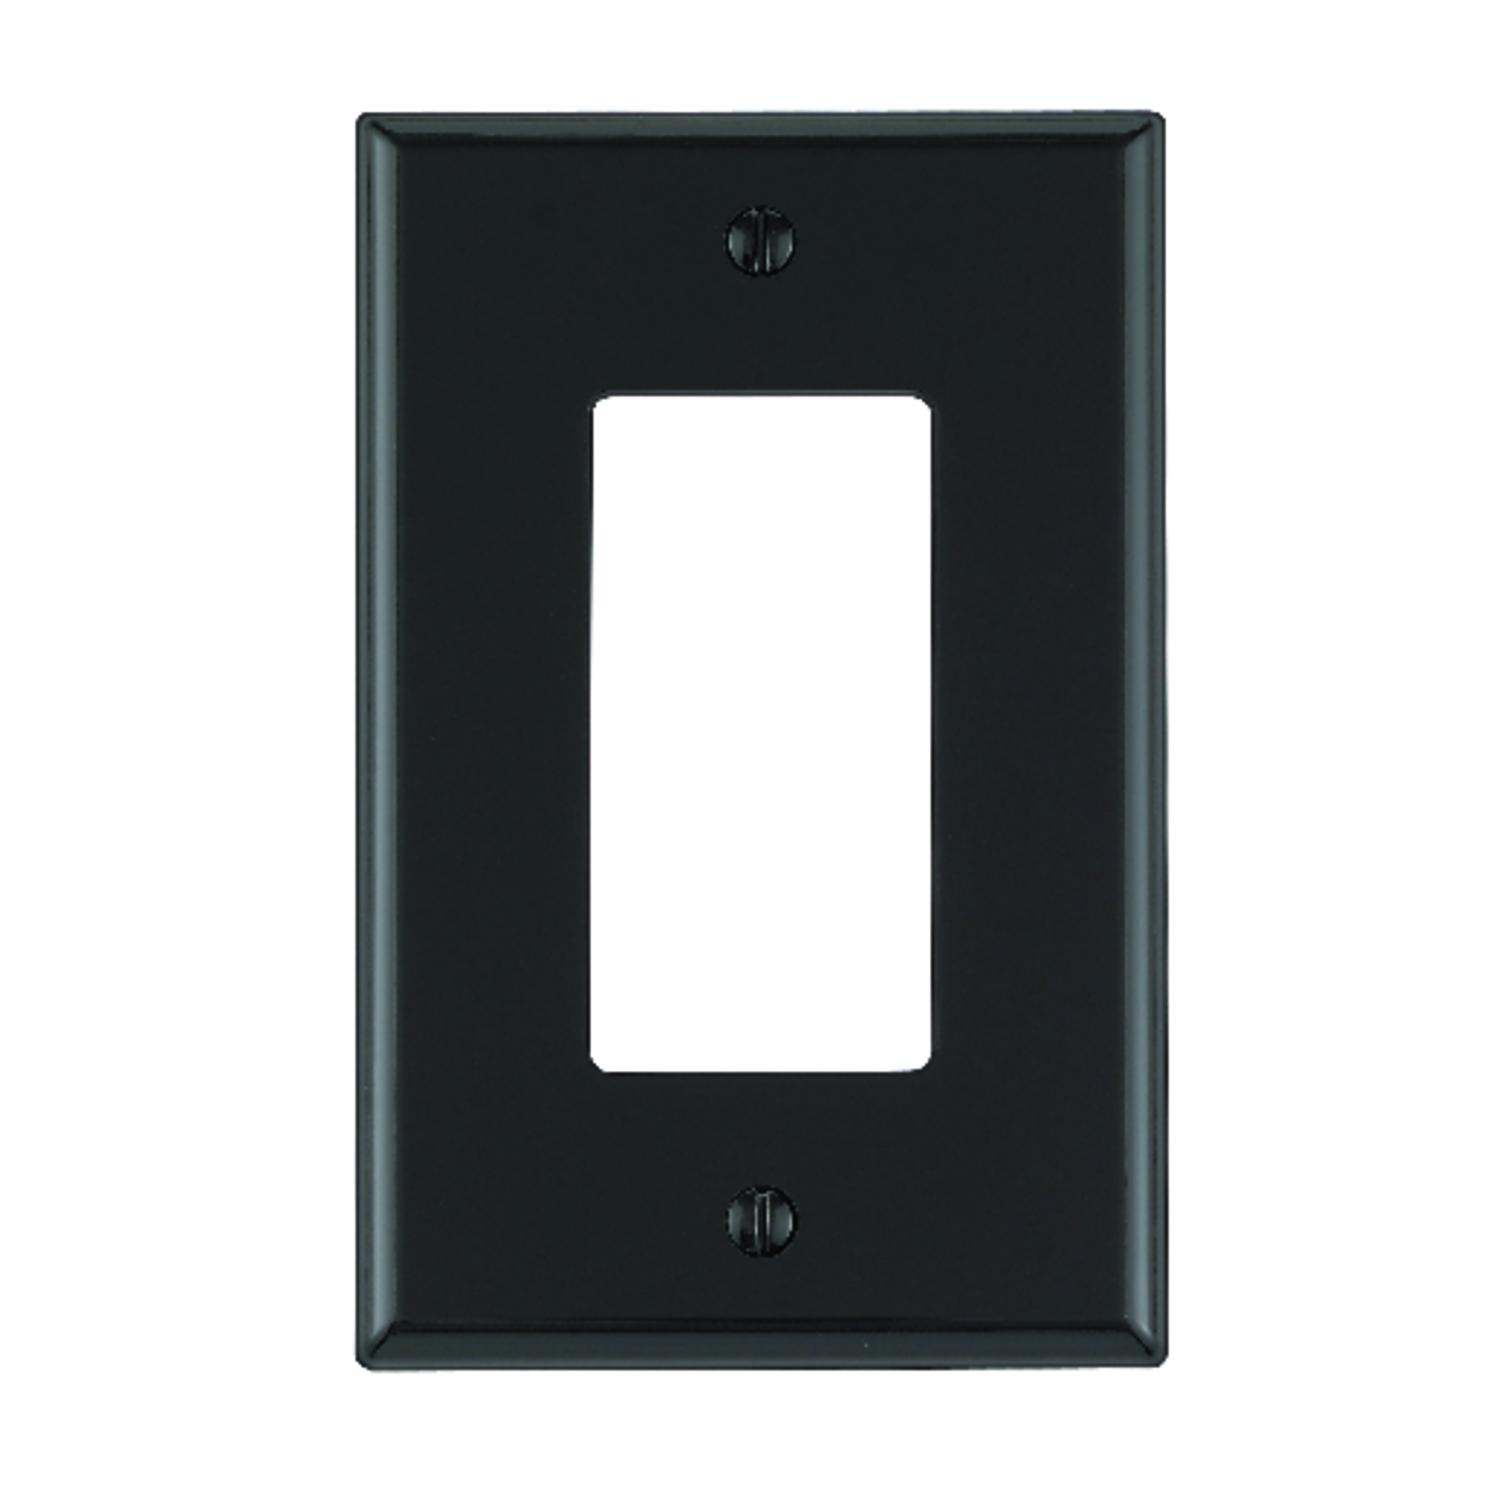 Leviton  Black  1 gang GFCI/Rocker  Wall Plate  1 pk Nylon